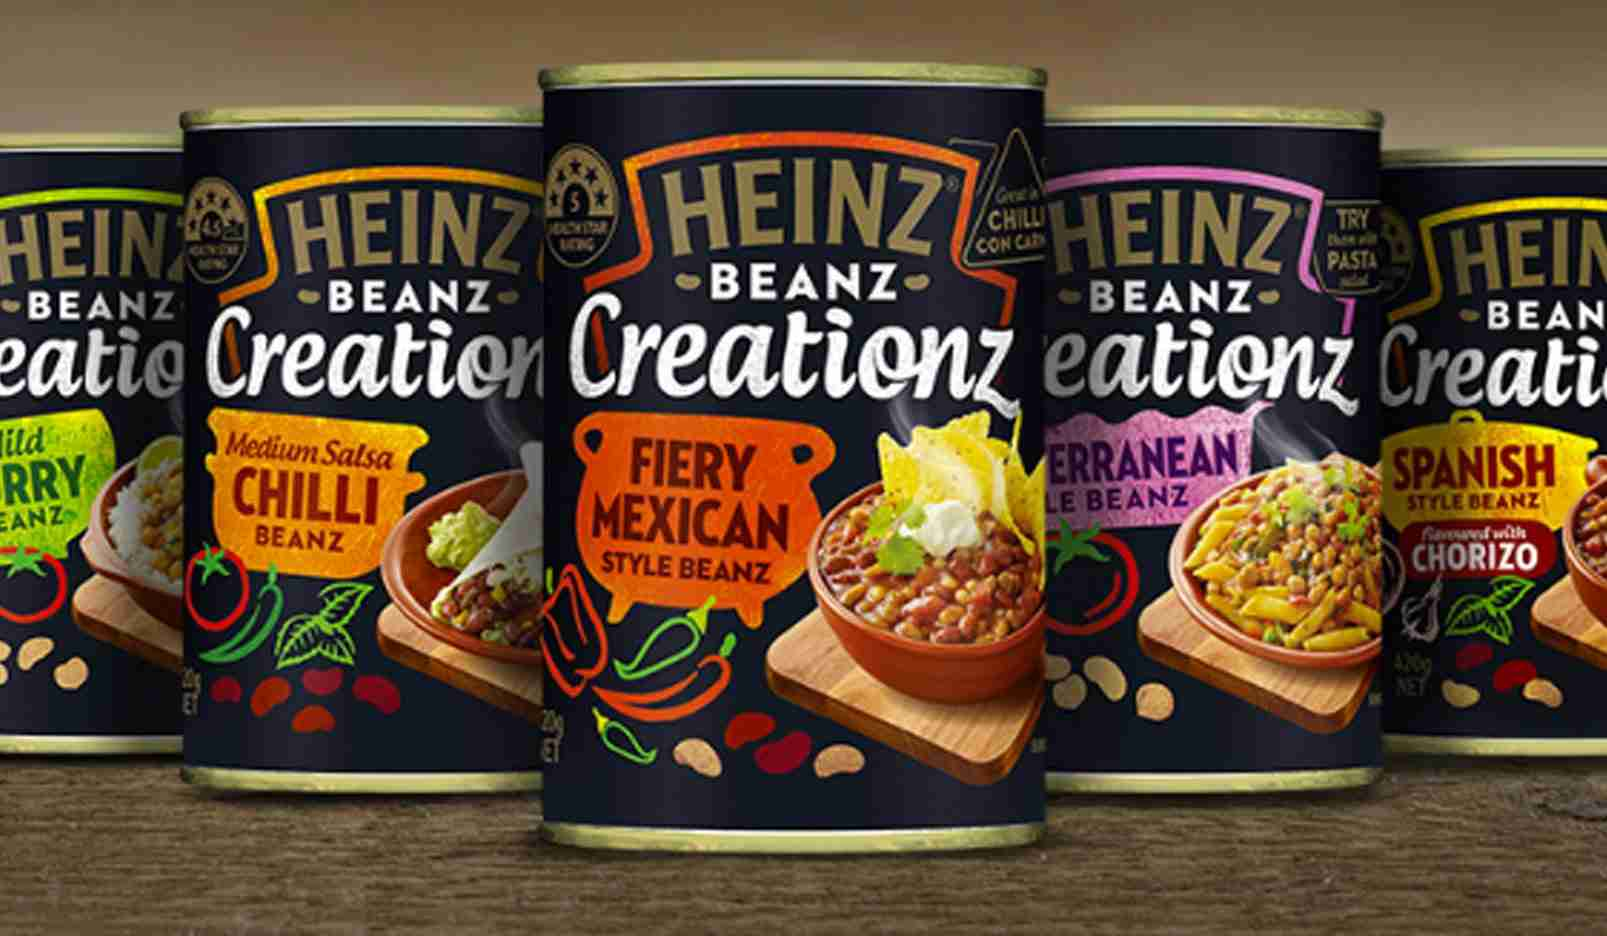 This image shows the new Heinz Beans Cans with their new marketing flavour, depicting the effect on their actual product of their use of Design thinking principles